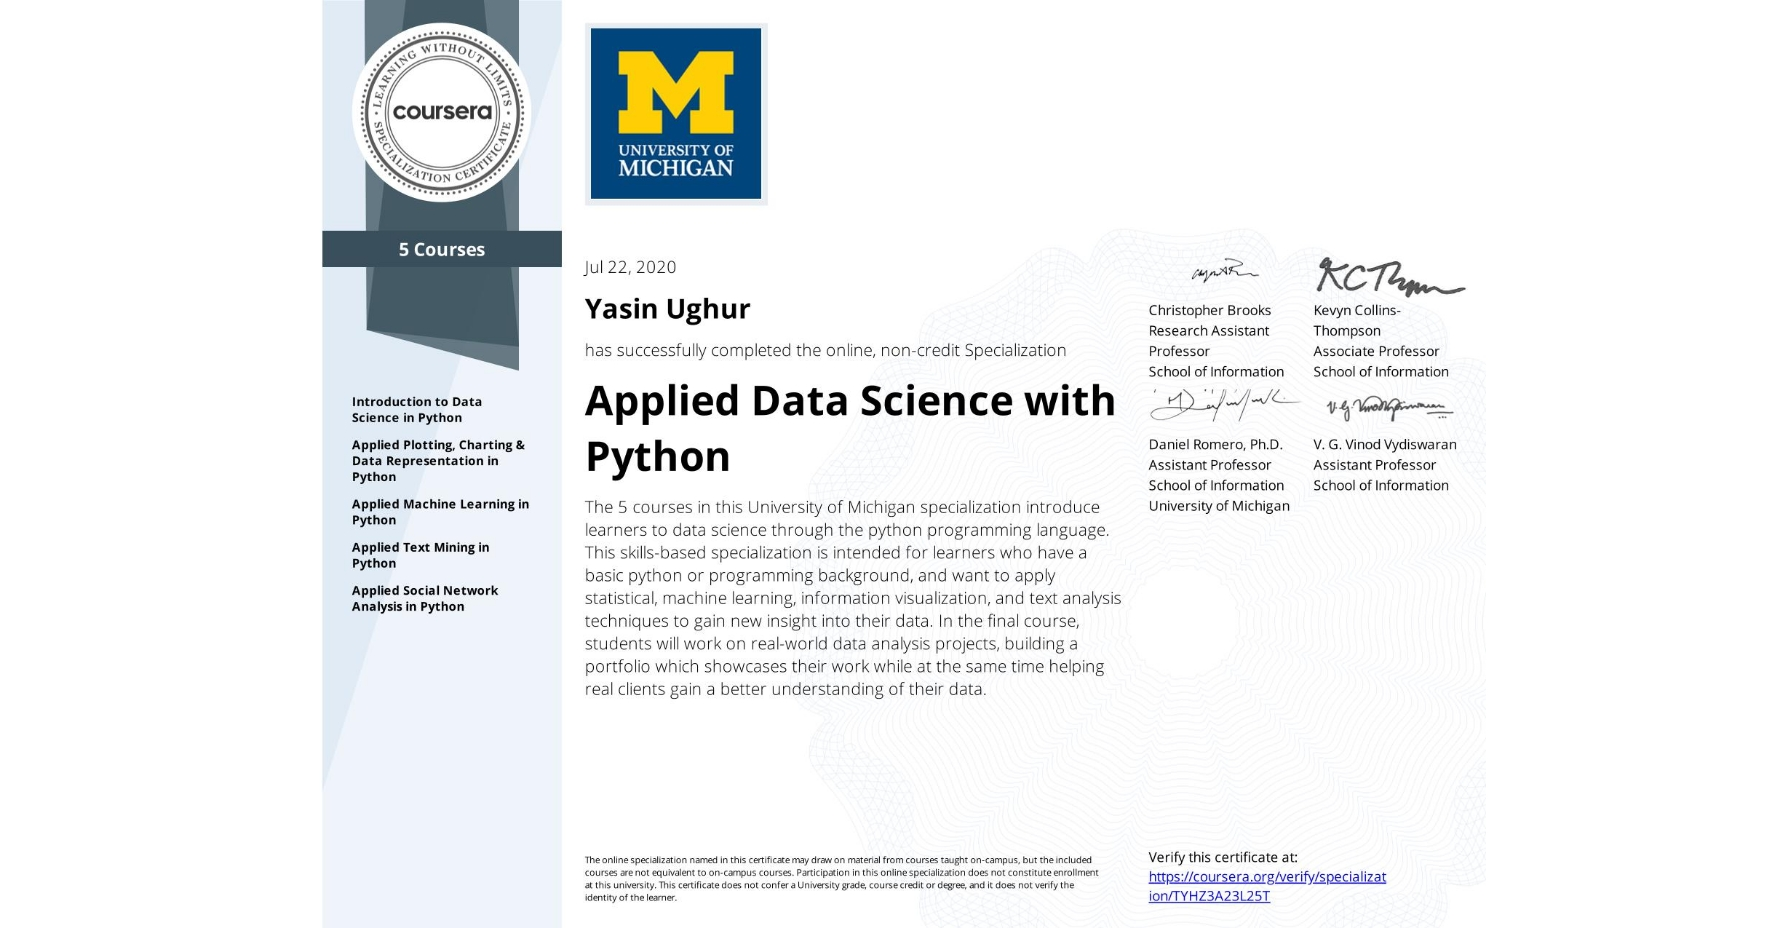 View certificate for Yasin Ughur, Applied Data Science with Python, offered through Coursera. The 5 courses in this University of Michigan specialization introduce learners to data science through the python programming language. This skills-based specialization is intended for learners who have a basic python or programming background, and want to apply statistical, machine learning, information visualization, and text analysis techniques to gain new insight into their data. In the final course, students will work on real-world data analysis projects, building a portfolio which showcases their work while at the same time helping real clients gain a better understanding of their data.